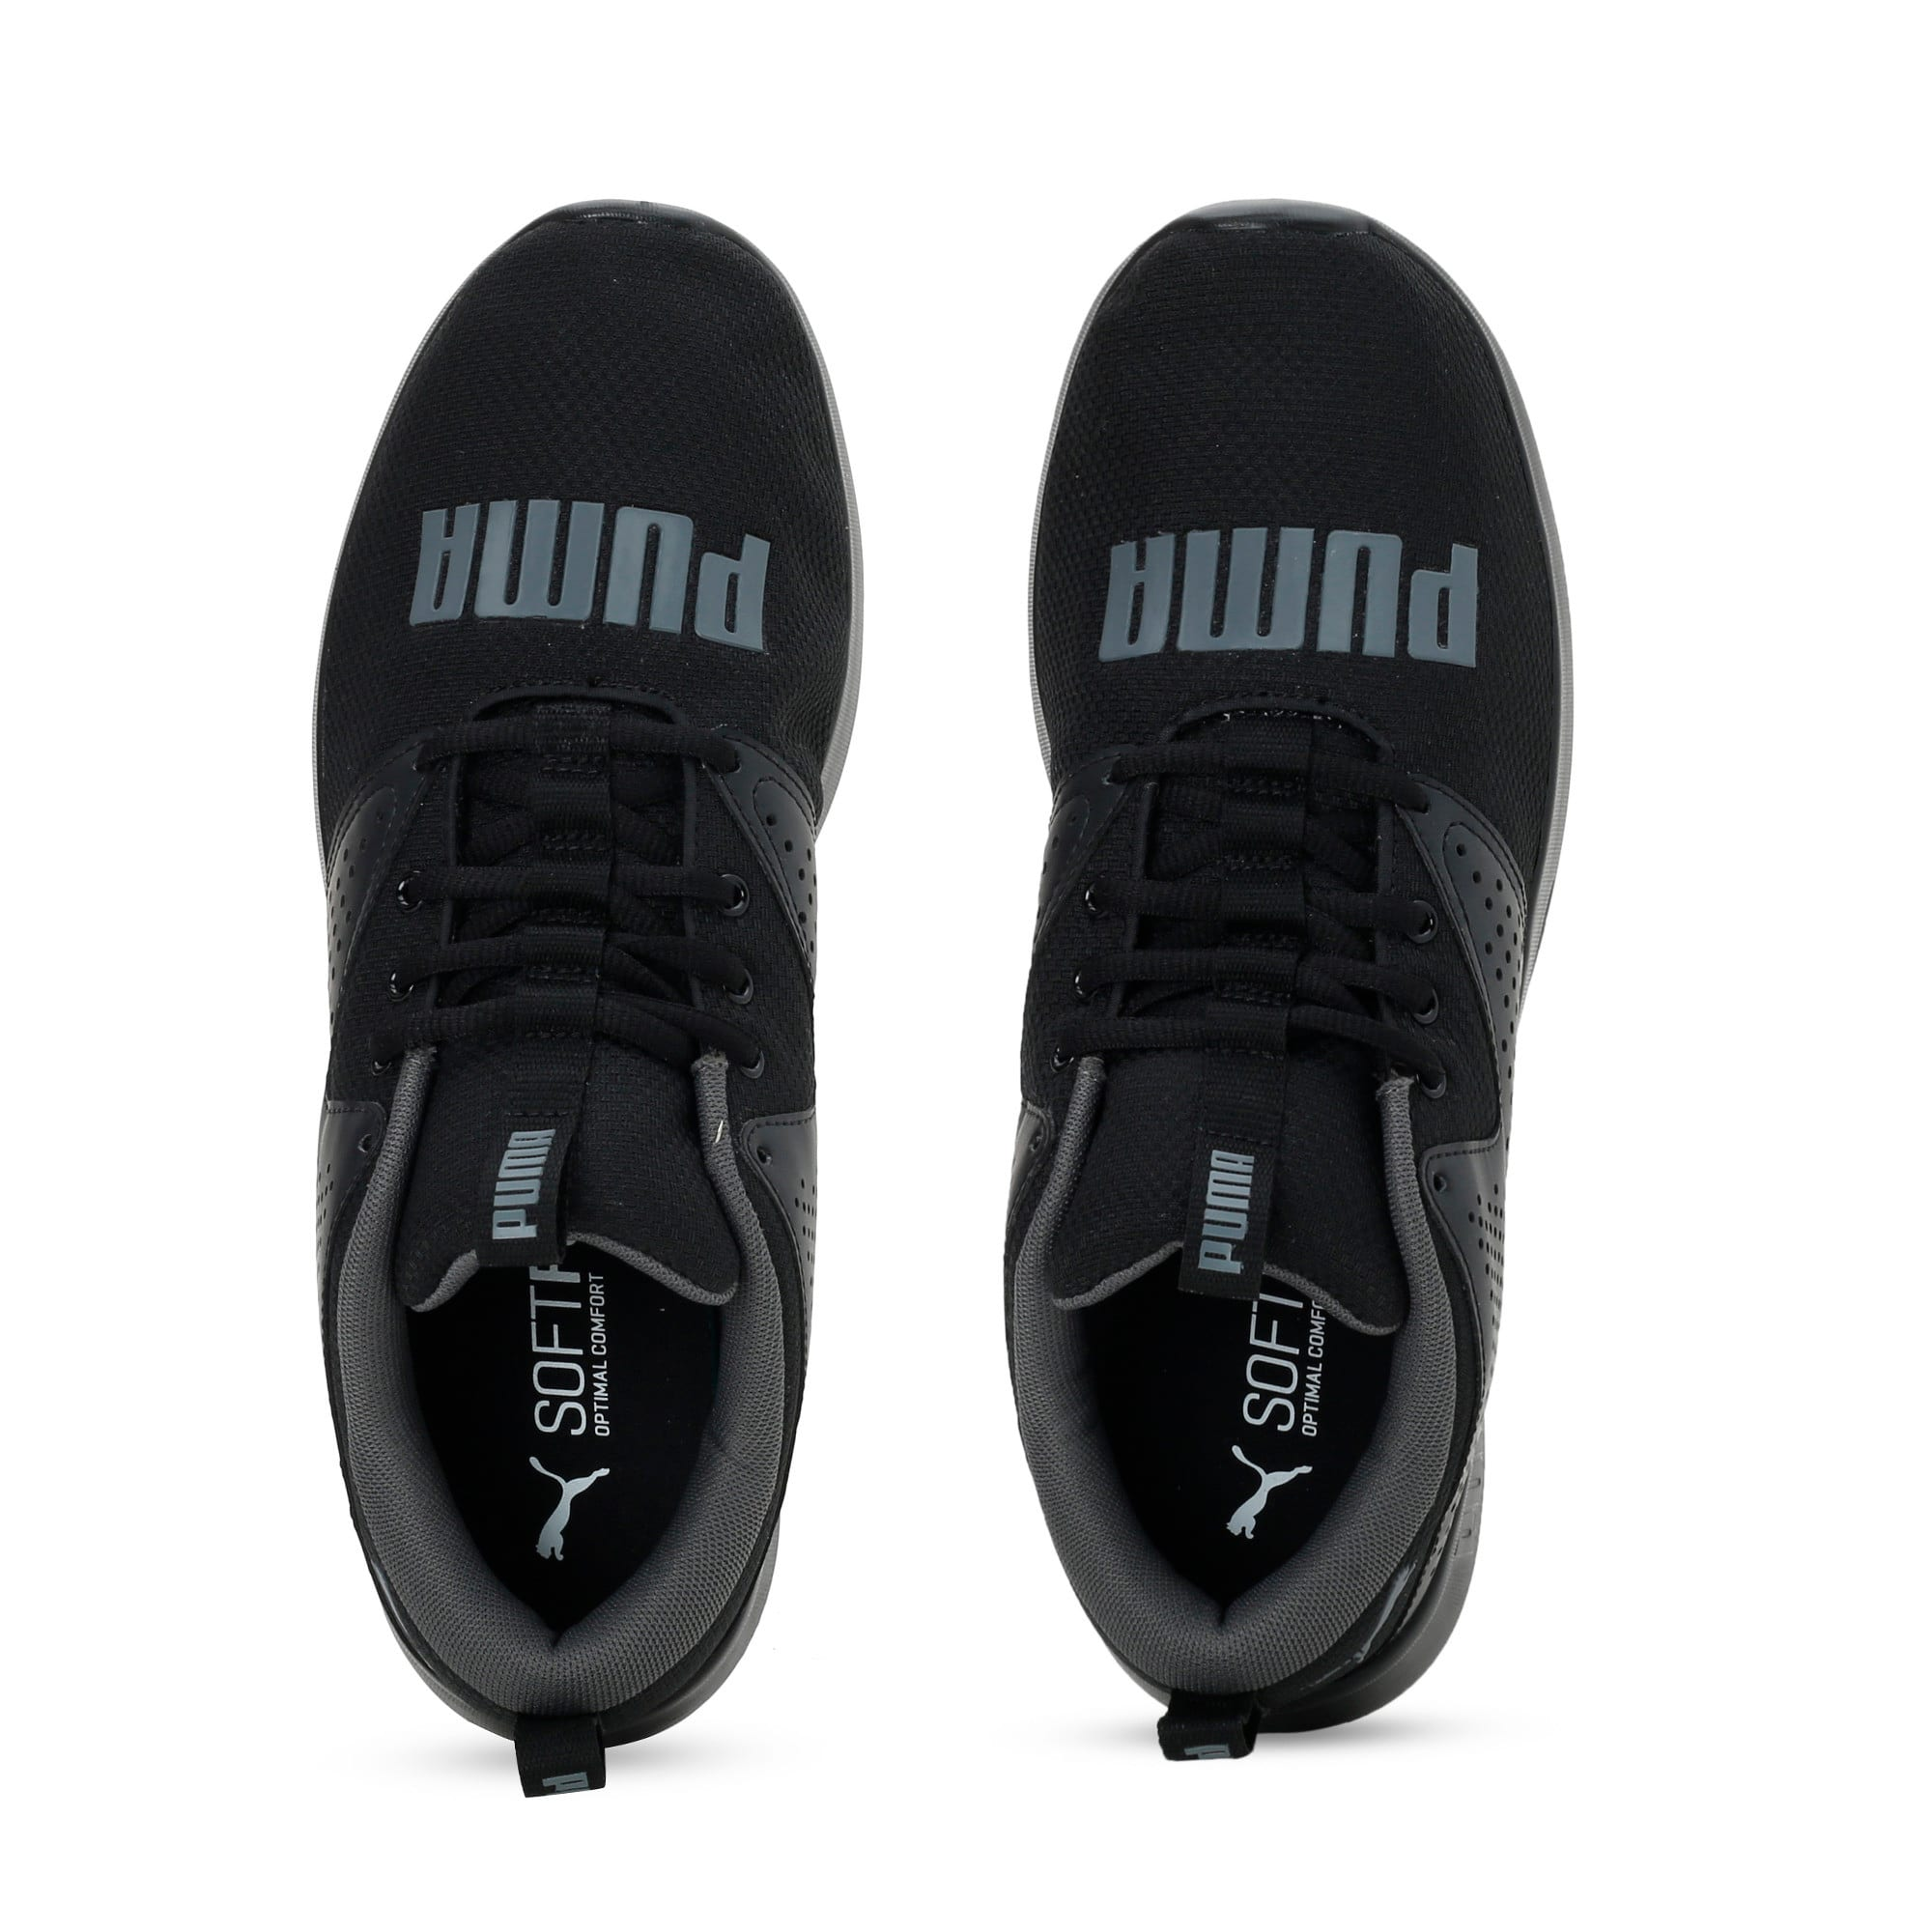 Thumbnail 4 of Flyer Modern Running Shoes, Puma Black-CASTLEROCK, medium-IND